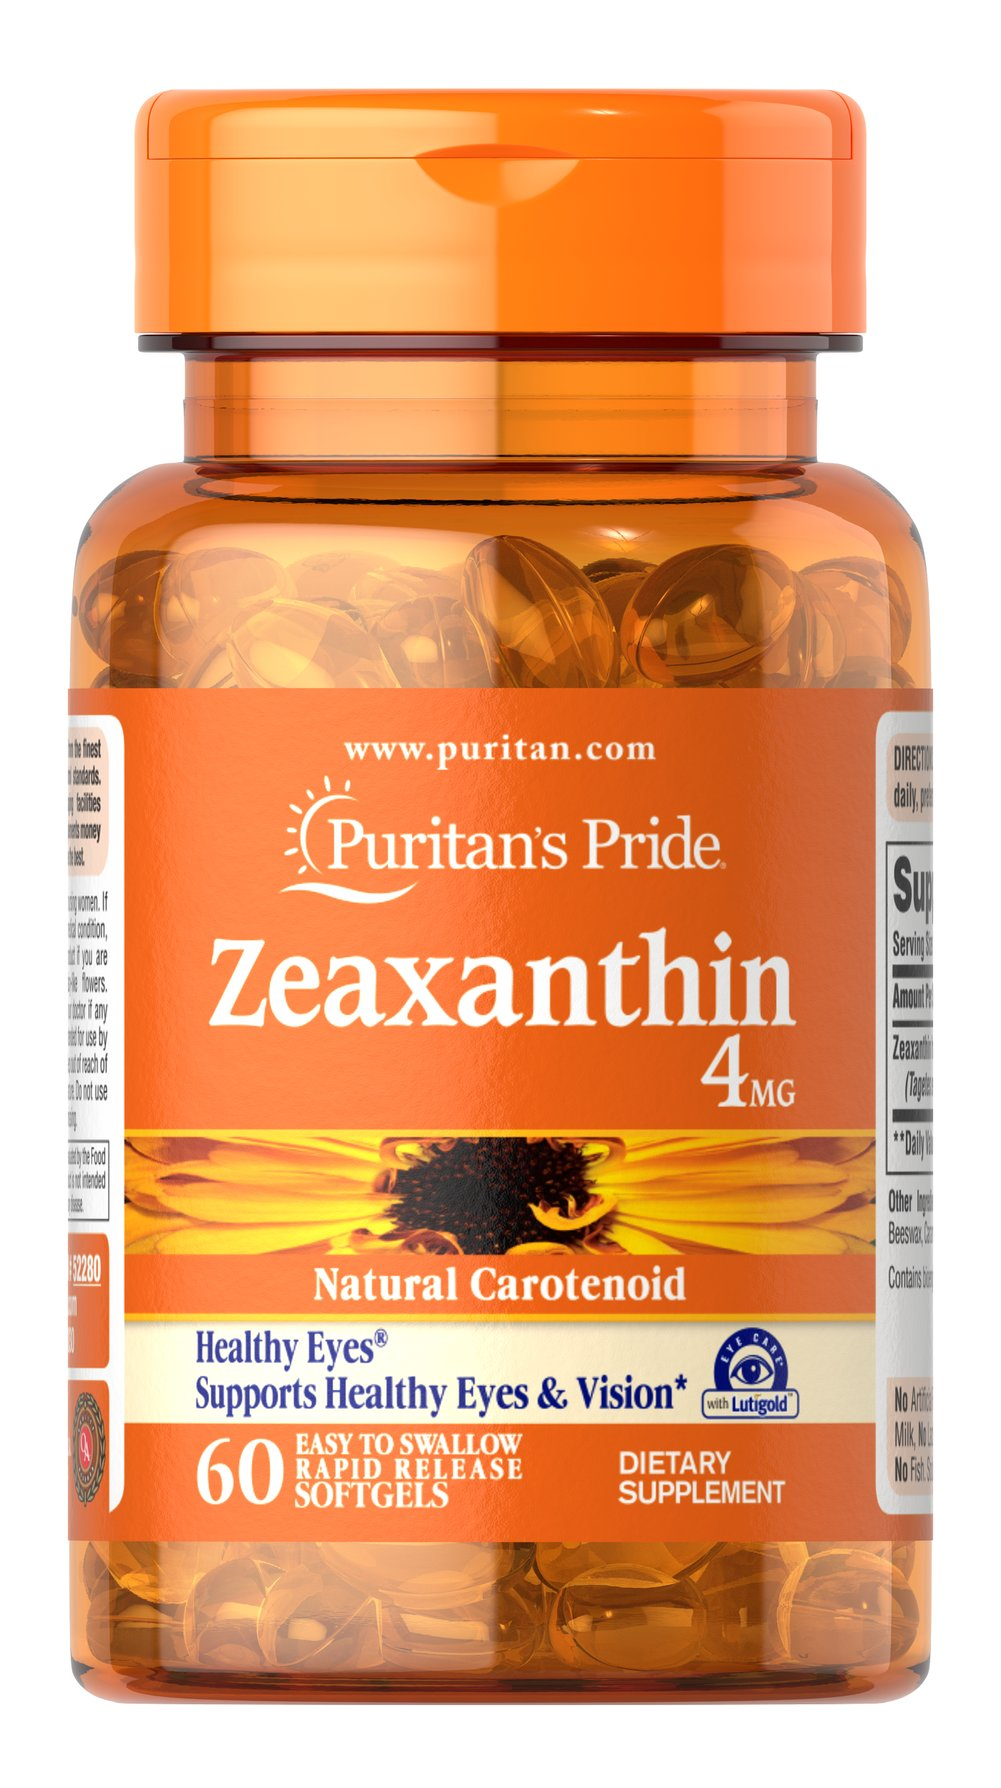 Zeaxanthin 4 mg Zeaxanthin is a natural carotenoid that helps support healthy eyes and vision.** Zeaxanthin is selectively placed in the macula's foveal center, the area in the eyes responsible for sharp central vision. In fact, Zeaxanthin's concentration in the eyes is up to 1000 times greater than concentrations found in any other body tissues.<br /><br />Adults may take 1 softgel with a meal, twice a day.  60 Softgels 4 mg